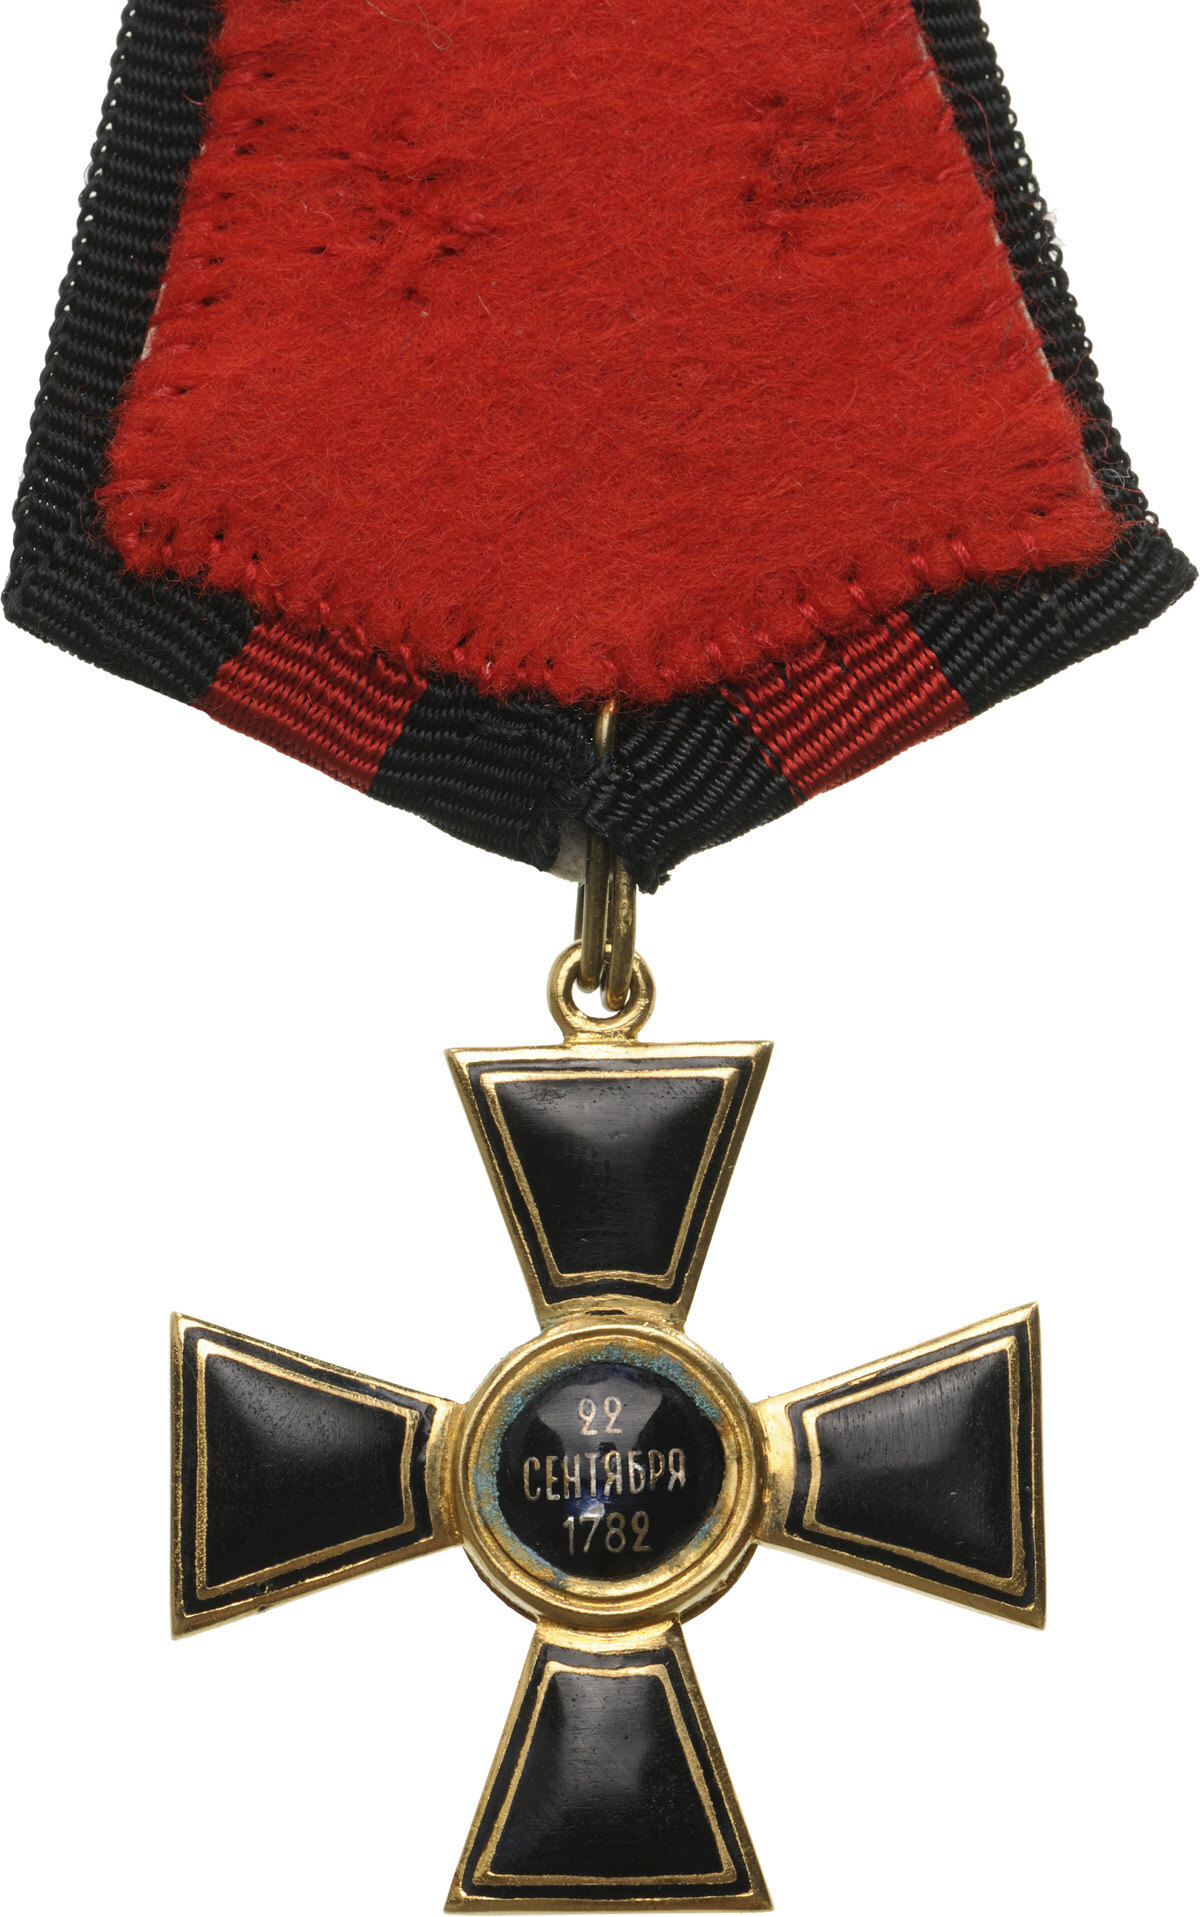 Lot 3205 - ORDER OF SAINT VLADIMIR